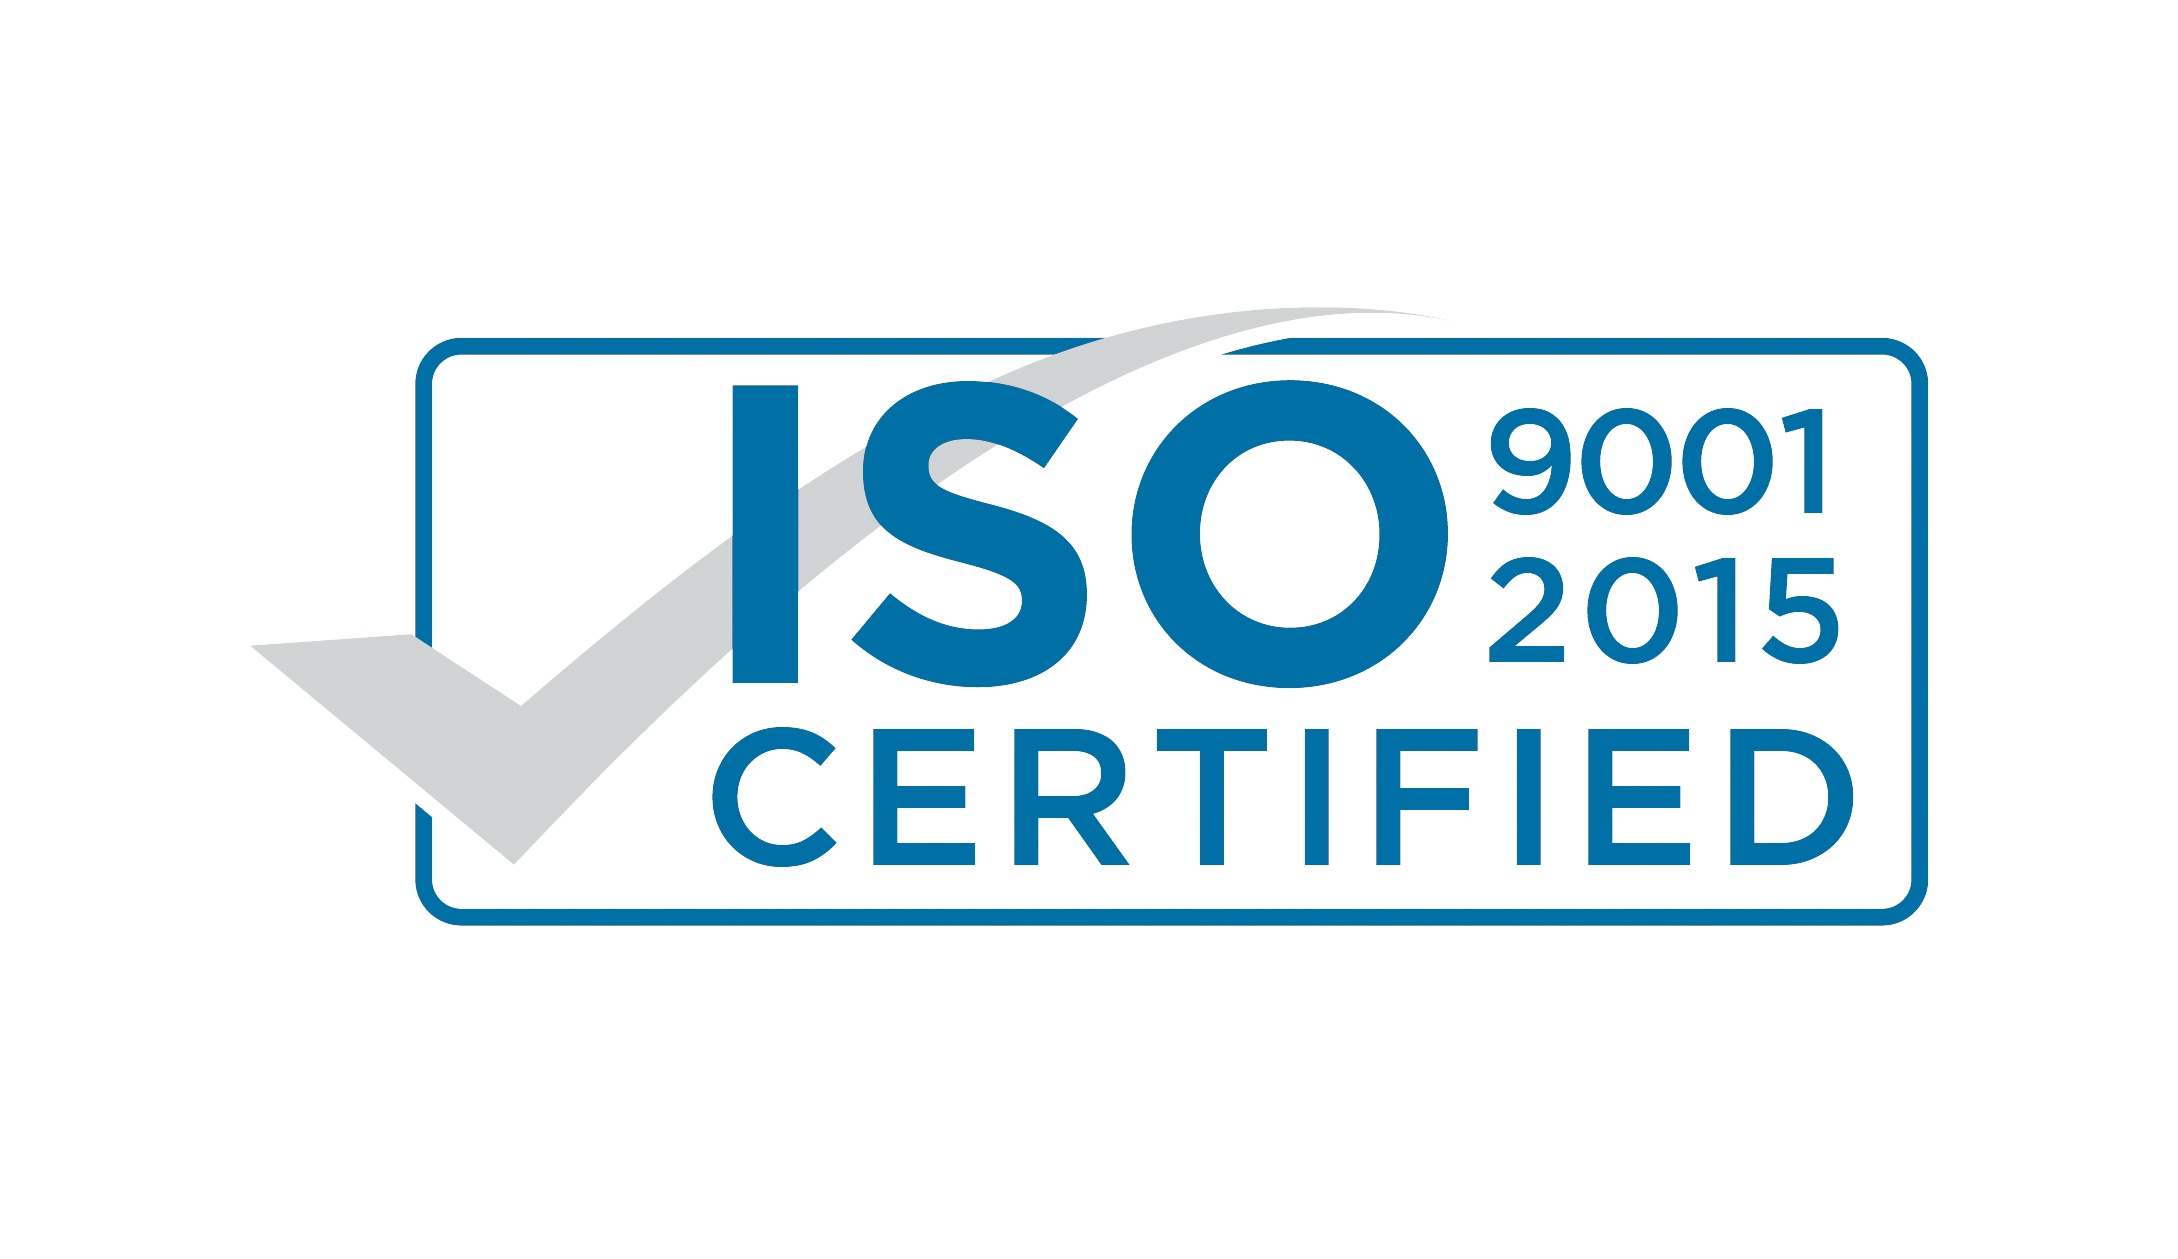 Aegide International is ISO 9001